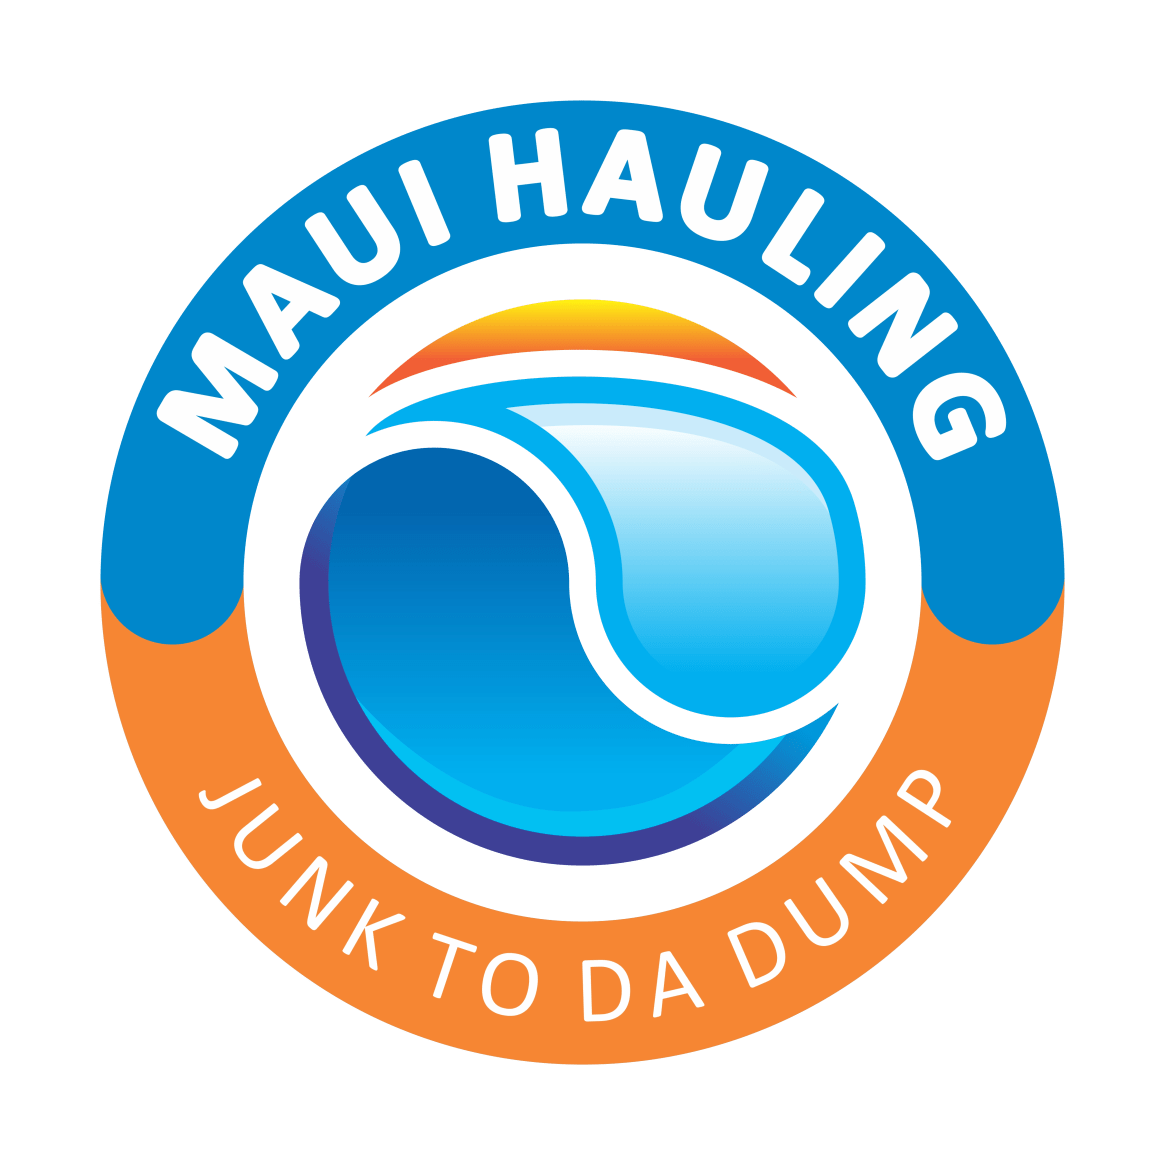 maui hauling junk trash garbage removal disposal